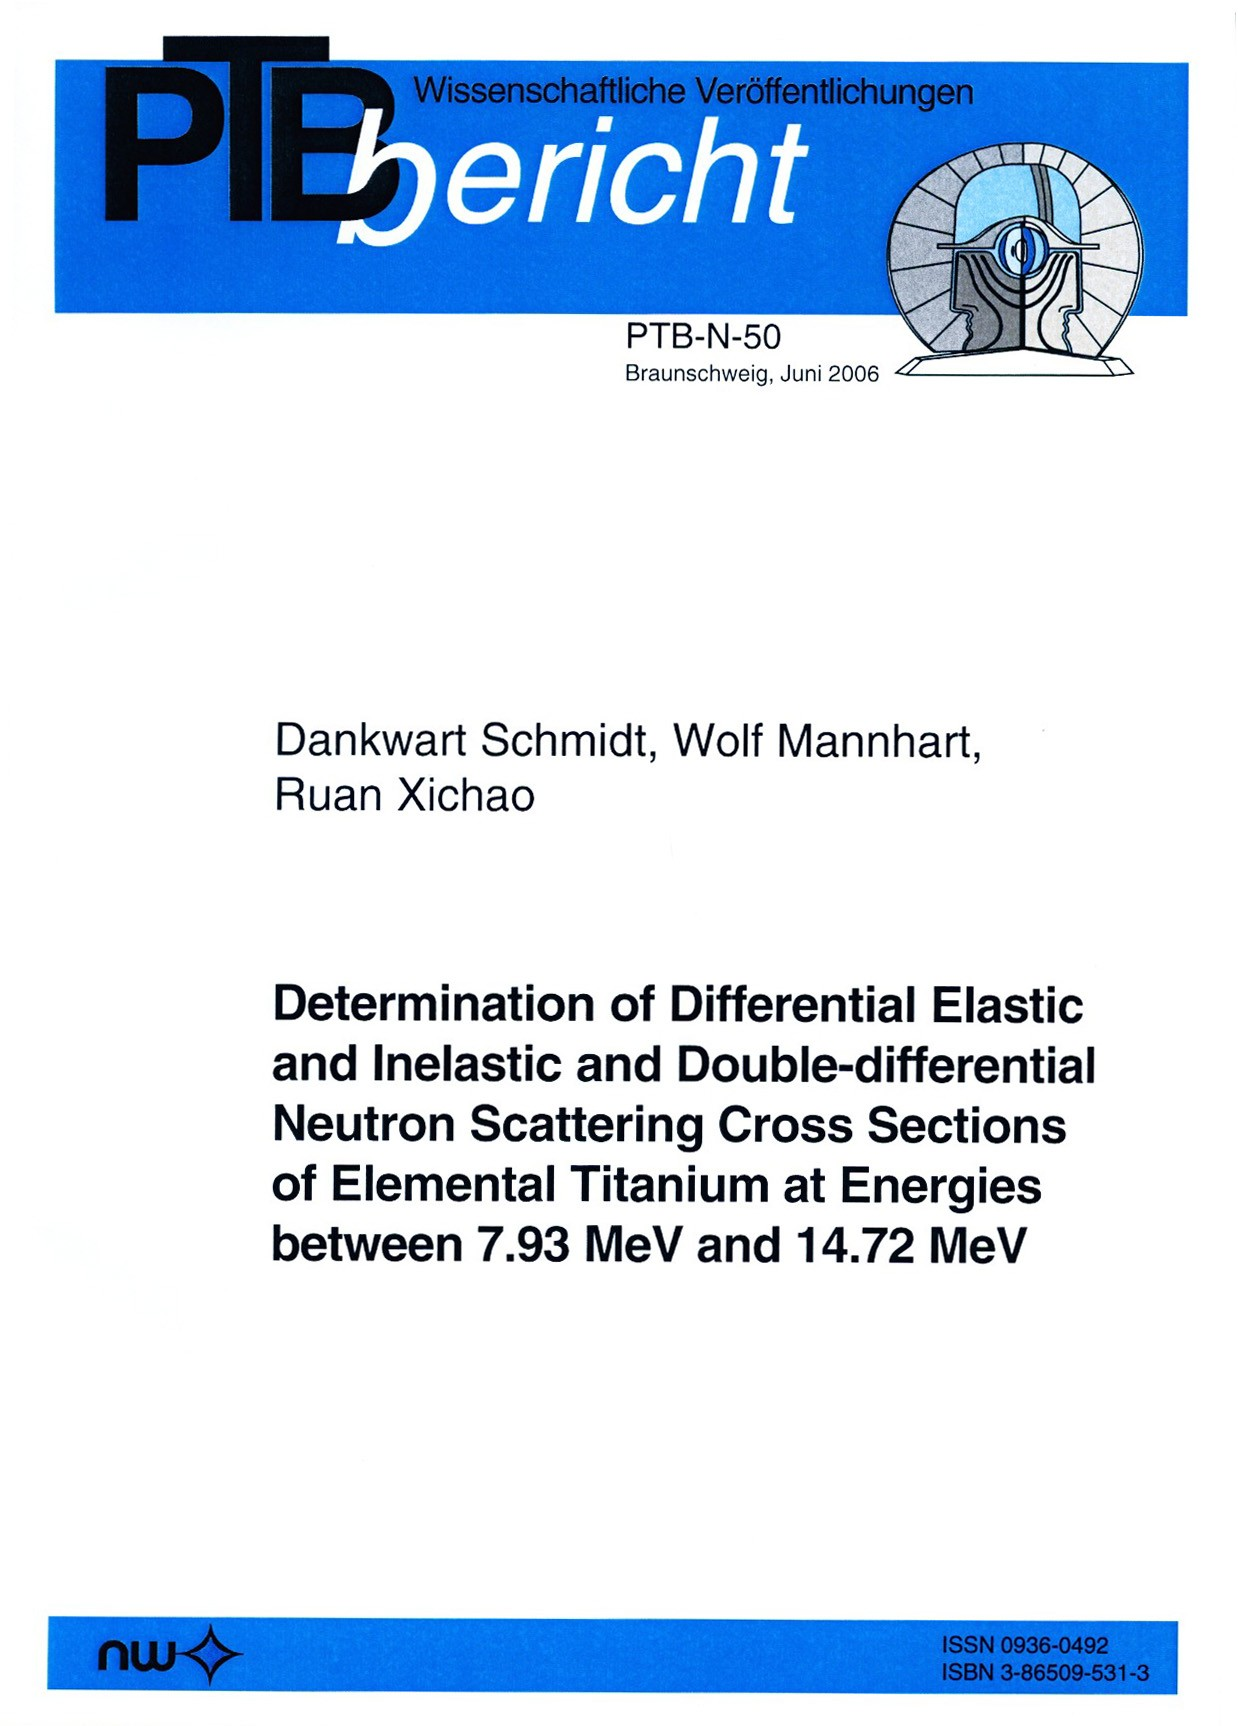 Determination of Differential Elastic and Inelastic and Double-differential Neutron Scattering Cross Sections of Elemental Titanium at Energies between 7.93 MeV and 14.72 MeV